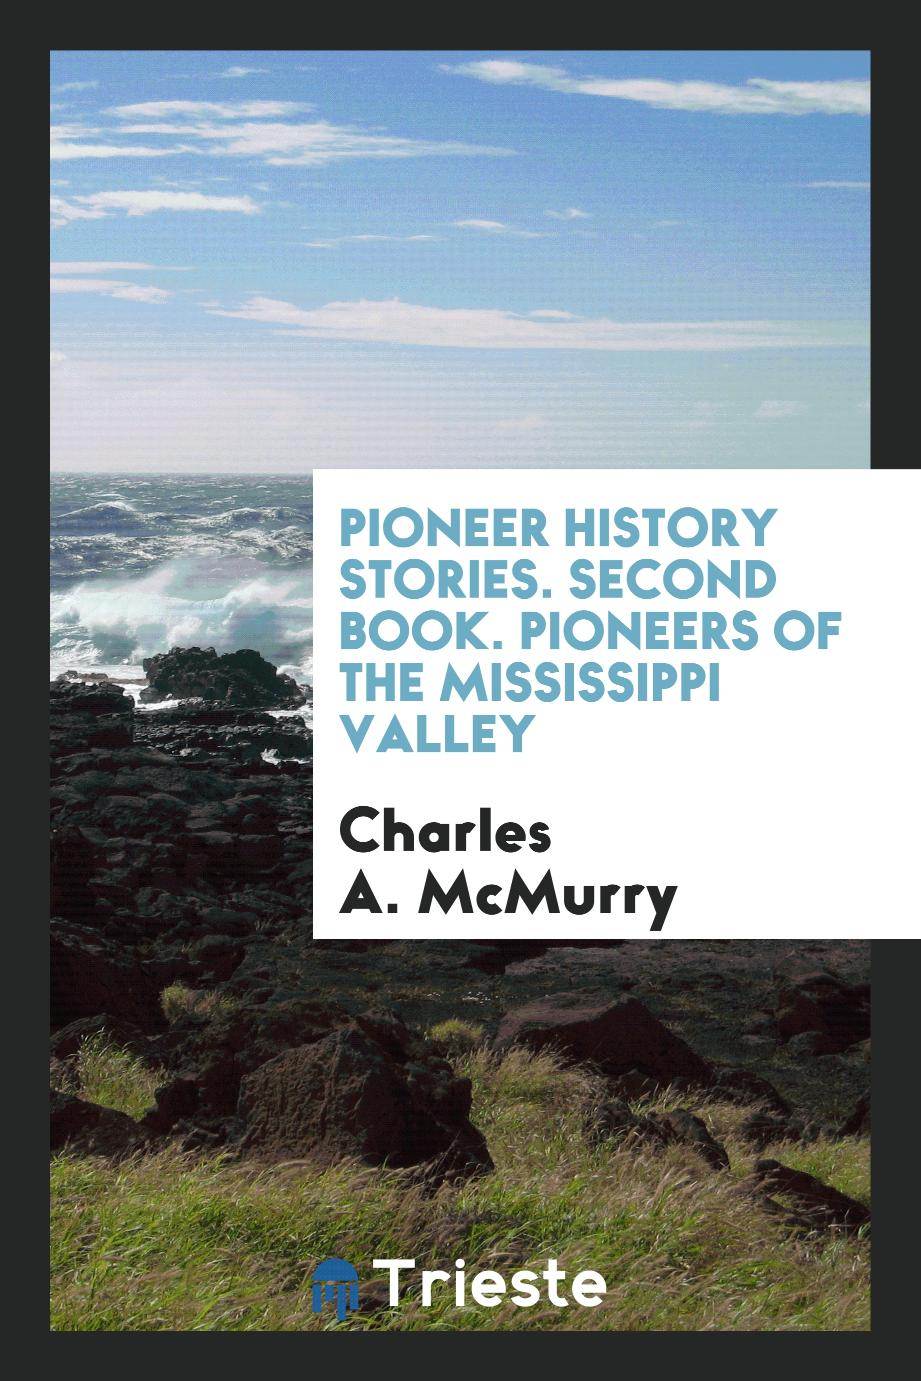 Pioneer History Stories. Second Book. Pioneers of the Mississippi Valley